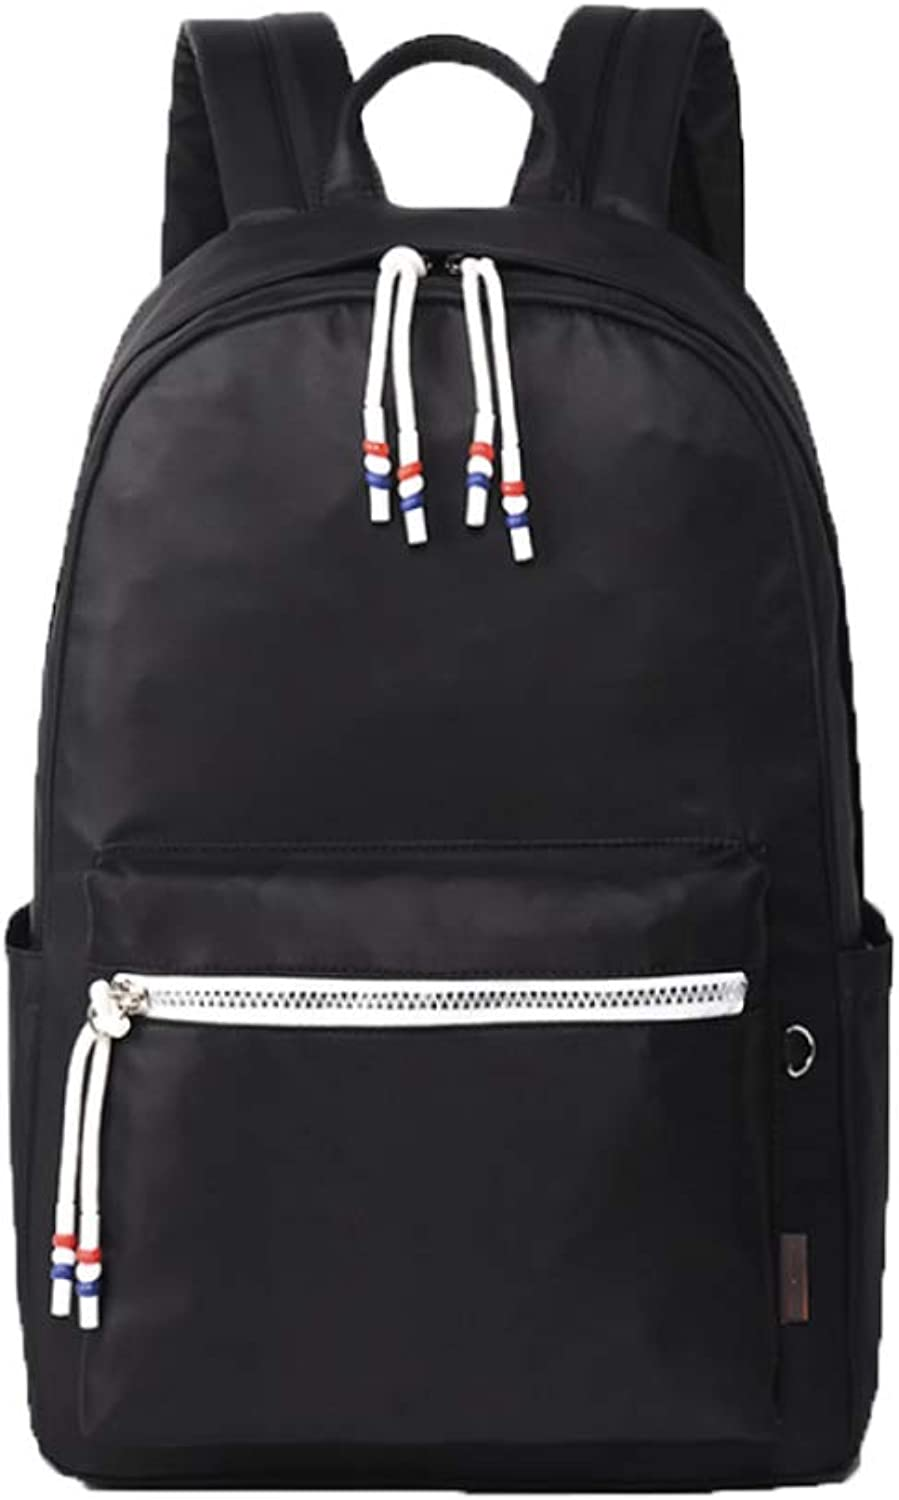 Student Bag Female Campus Simple Middle School Backpack Backpack Unisex School Bag Collection Canvas Backpack